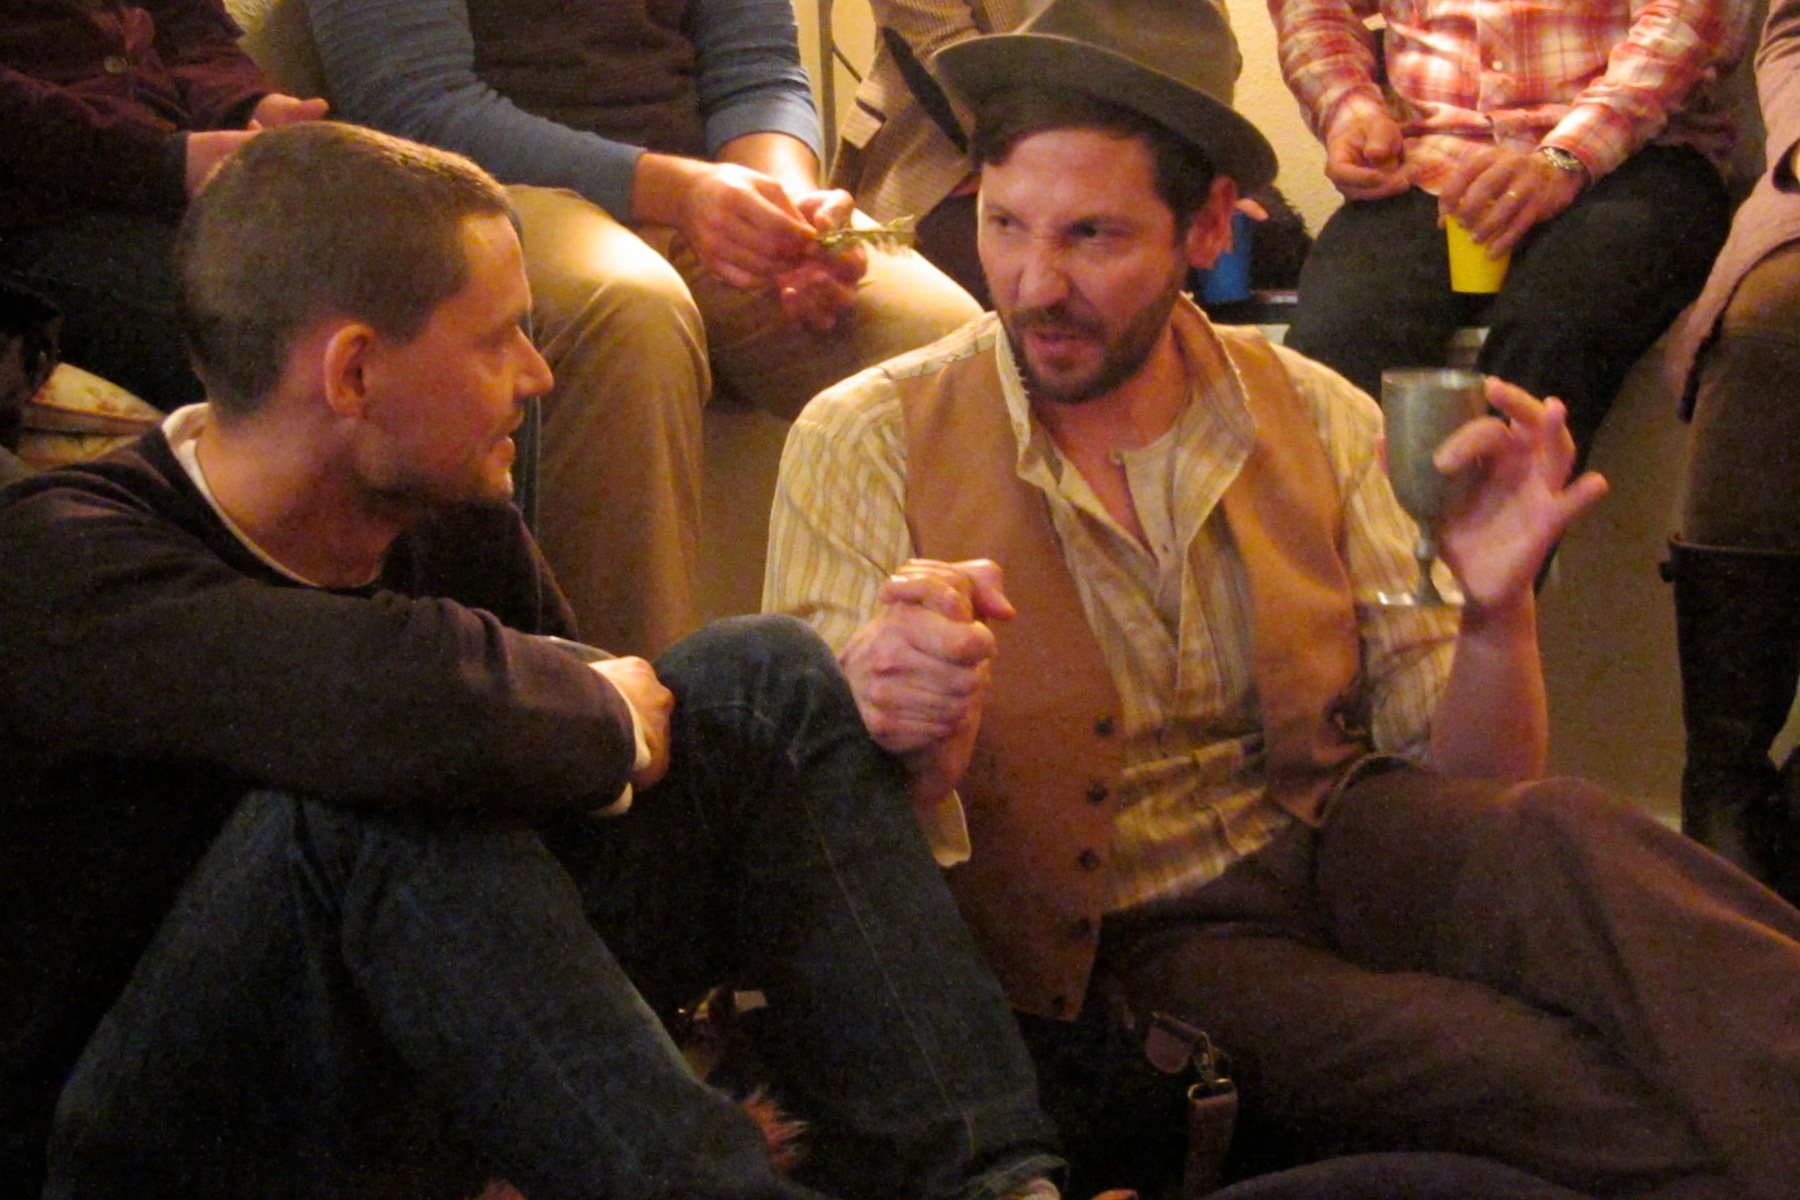 Performer Ryan Hayes in tan-colored vest, brown brimmed hat and yellow-striped shirt sits on the floor next to an audience member in a dark pullover top while holding a metal wine glass.